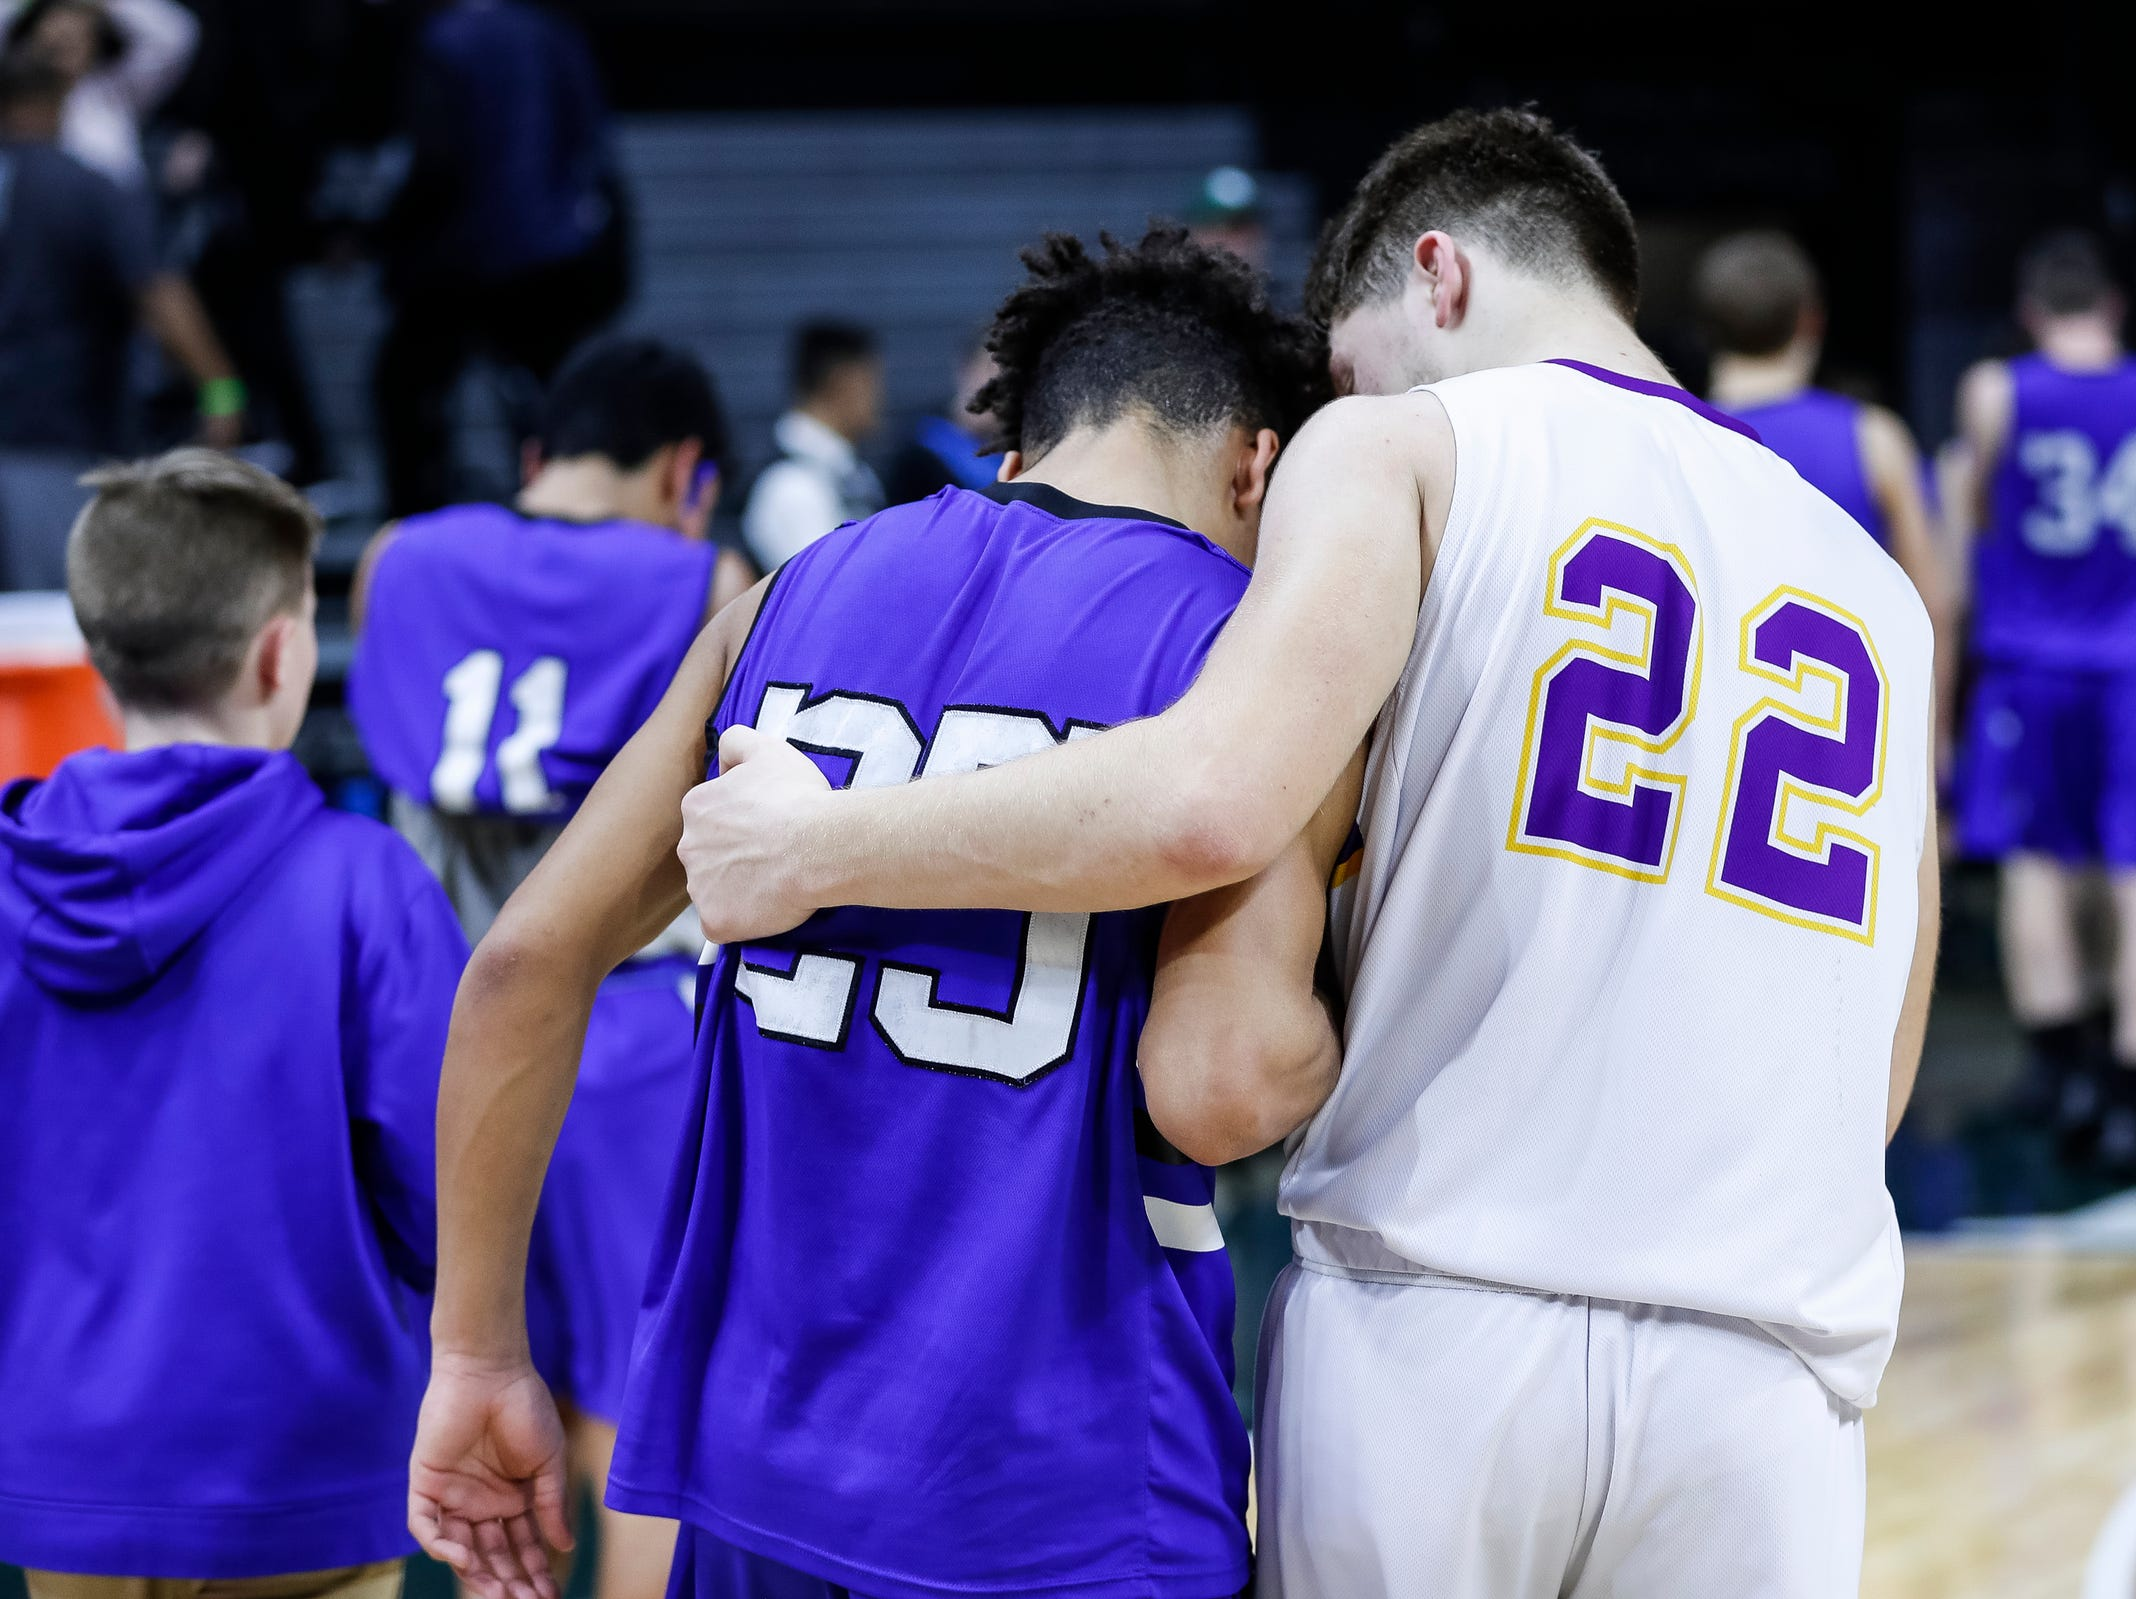 Wyoming Tri-unity Christian's Brady Titus (25) is comforted by Frankfort's Ethan Ness (22) after the MHSAA Division 4 semifinal at the Breslin Center in East Lansing, Thursday, March 14, 2019.